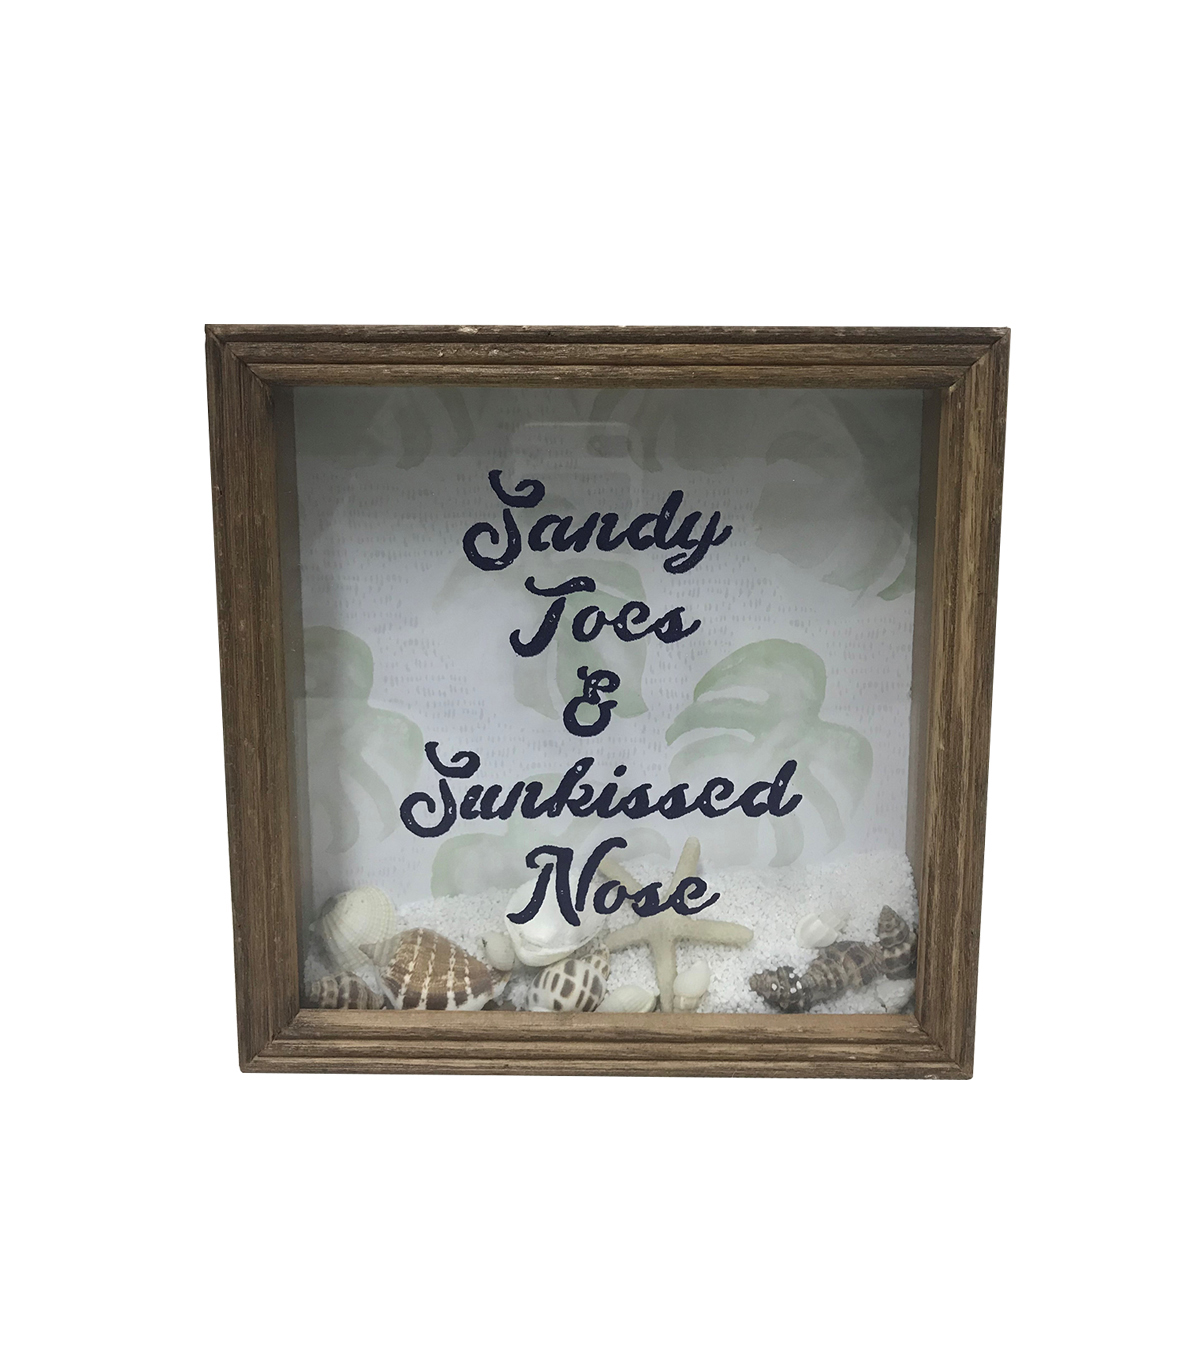 Indigo Mist Tabletop Decor-Sandy Toes & Sunkissed Nose